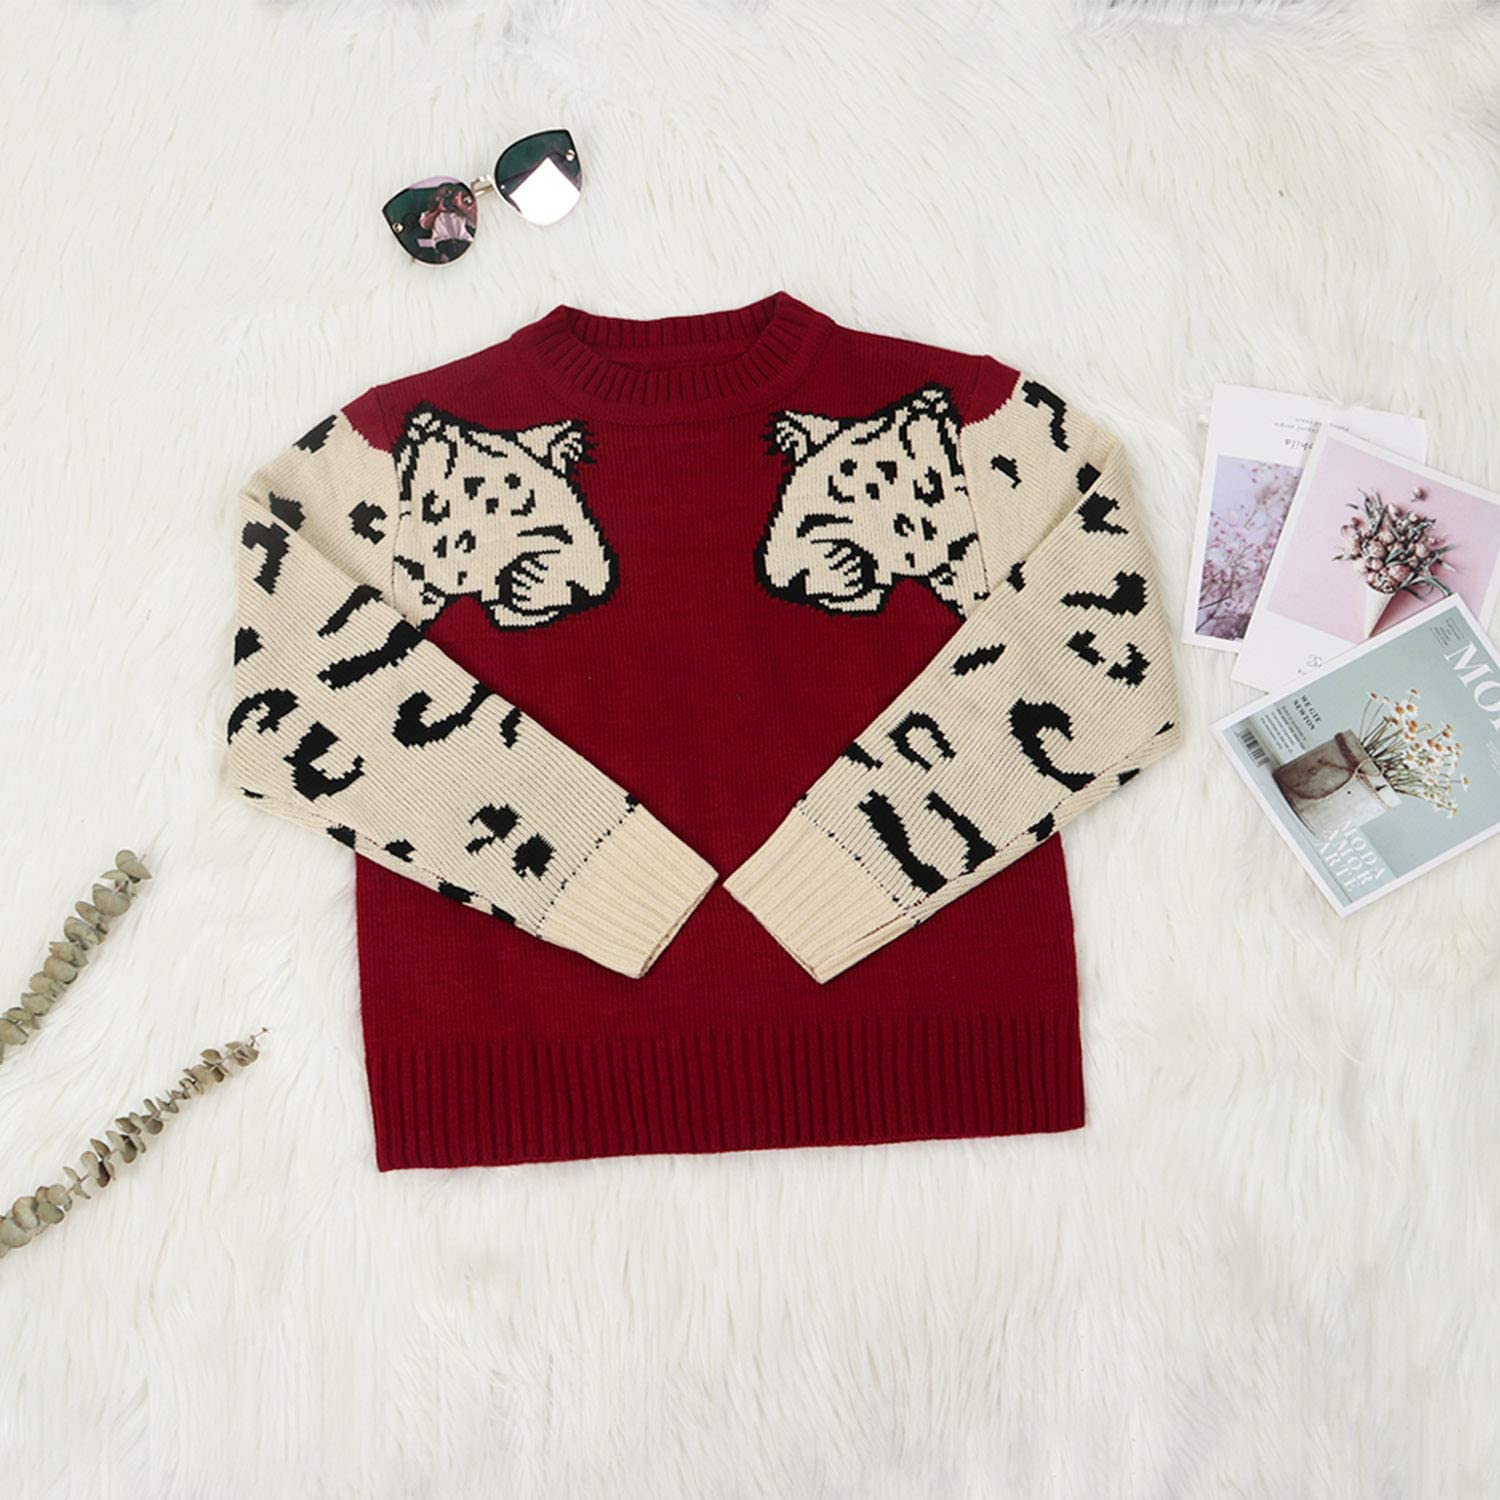 Angashion Womens Sweaters Casual Leopard Printed Patchwork Long Sleeves Knitted Pullover Cropped Sweater Tops